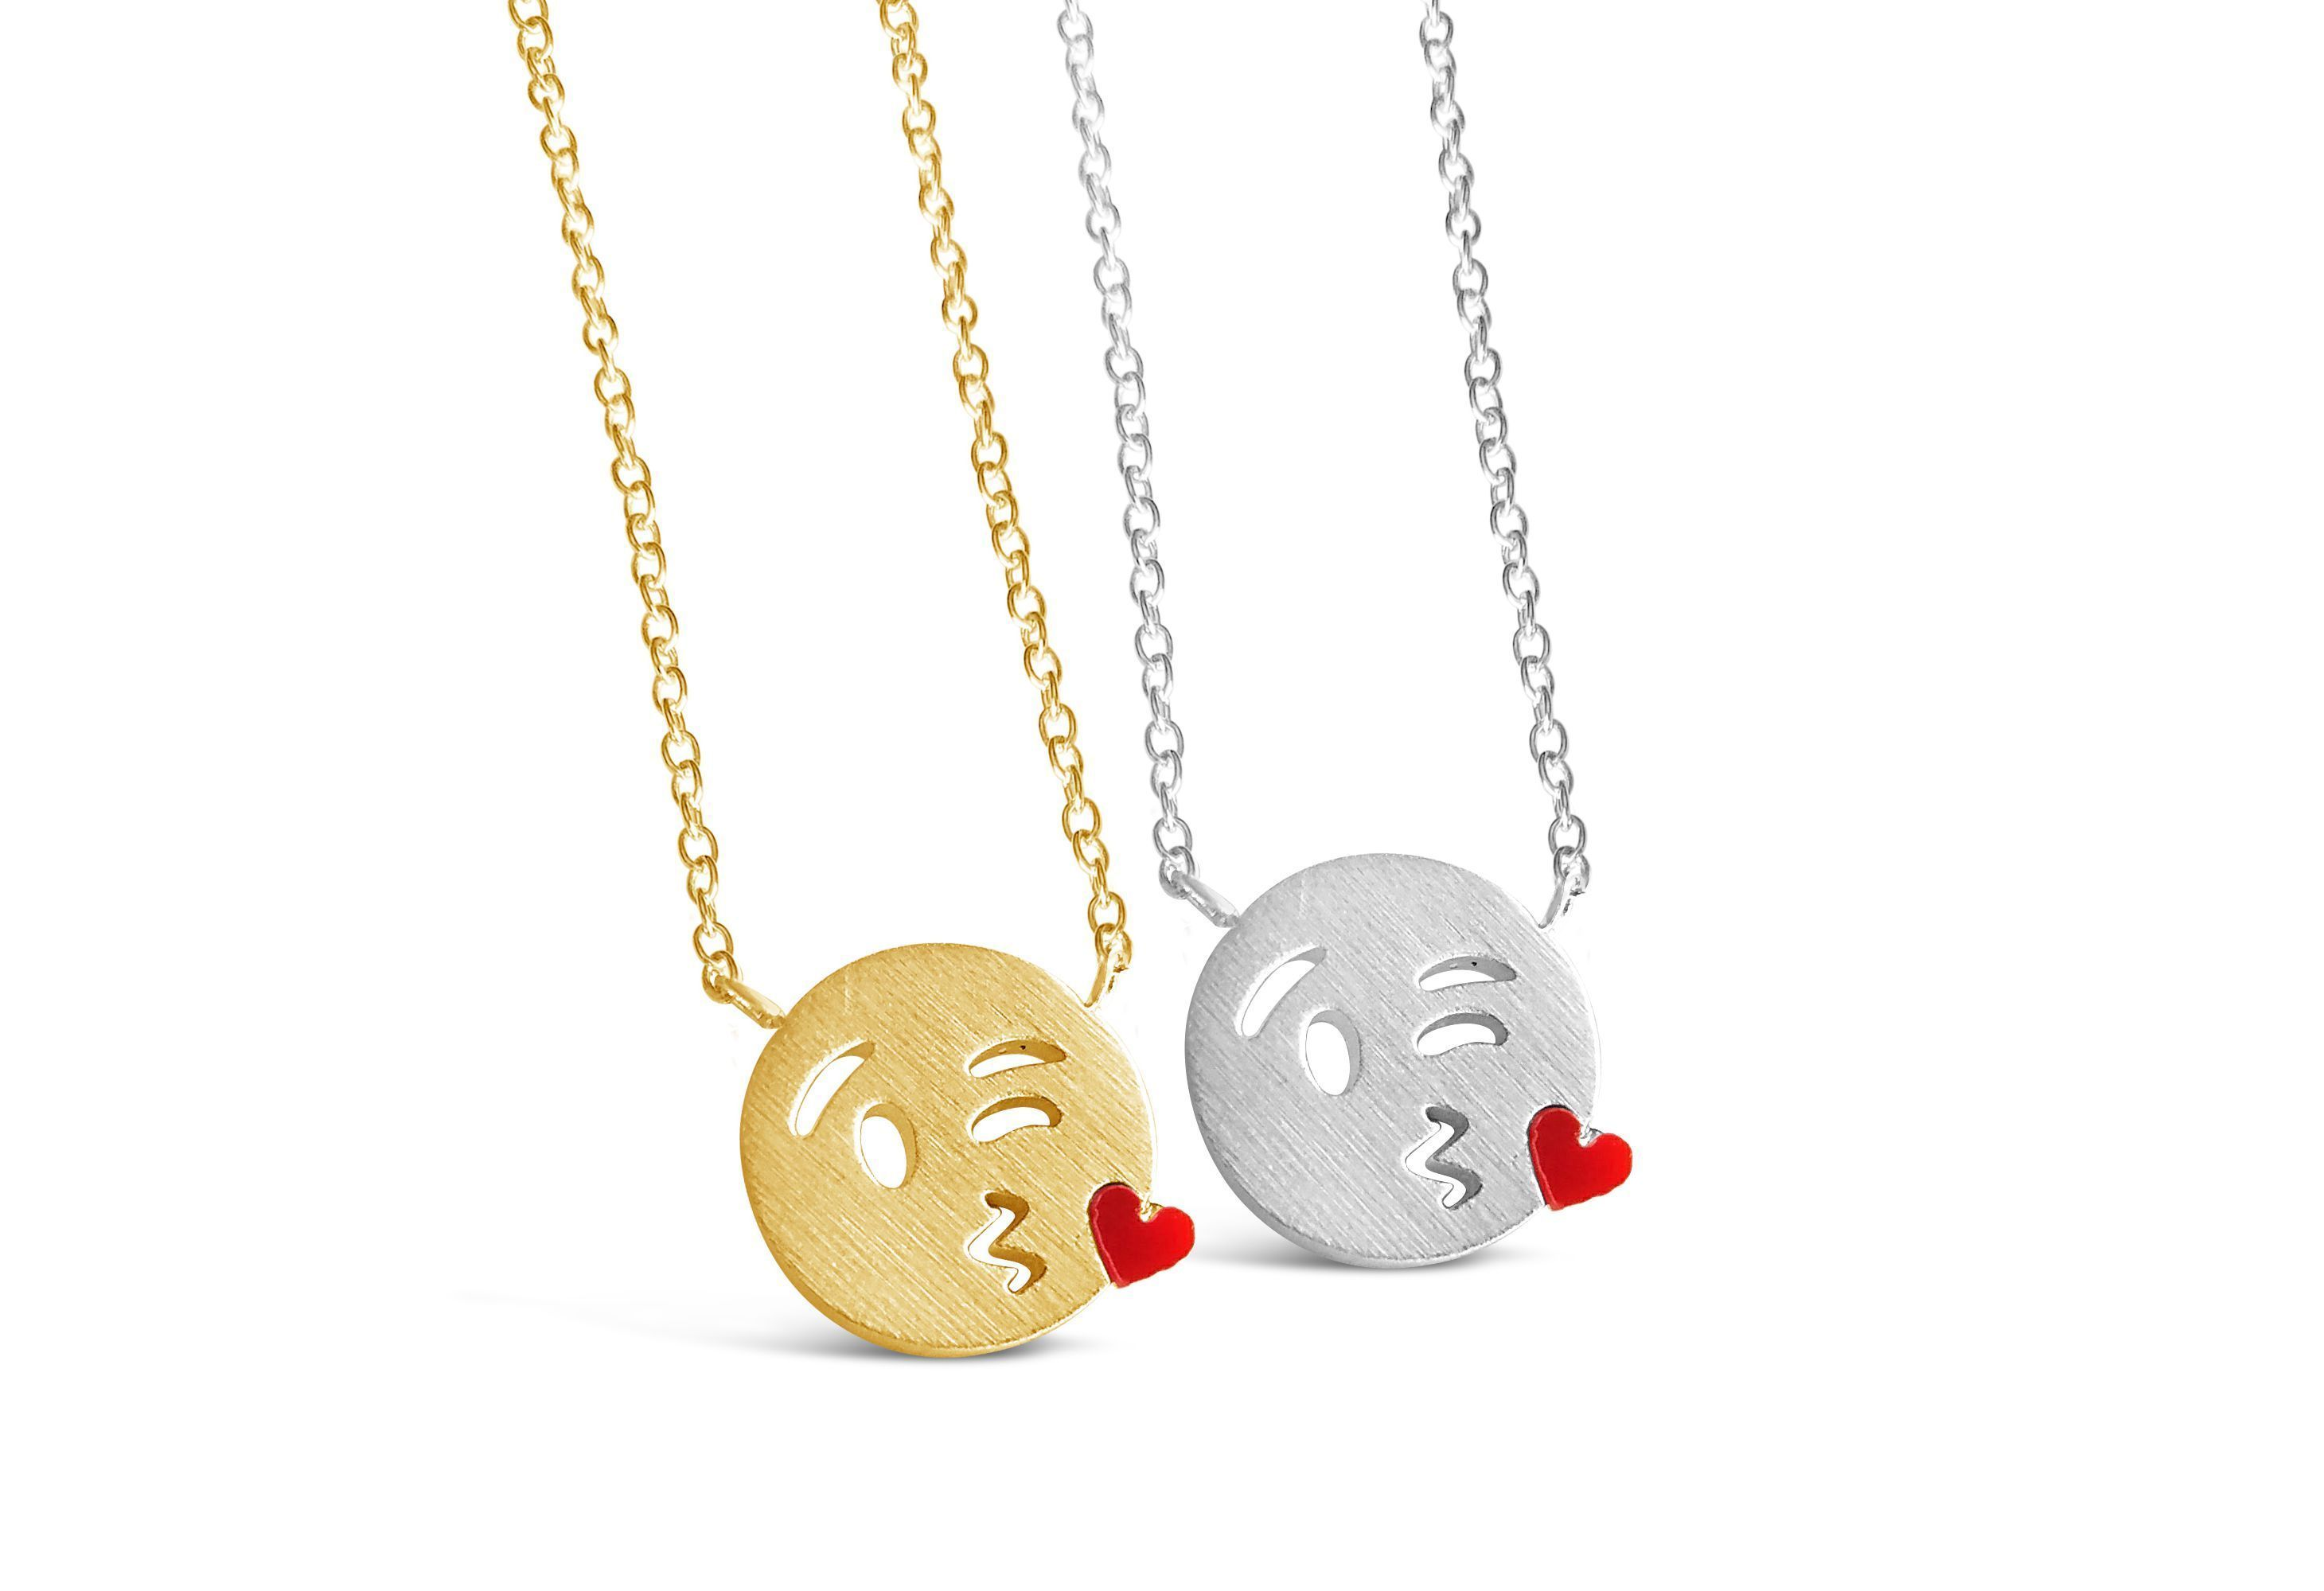 Fantasy, Fetish & Accessories Kiss Emoji Necklace Handsome Appearance Sexual Wellness